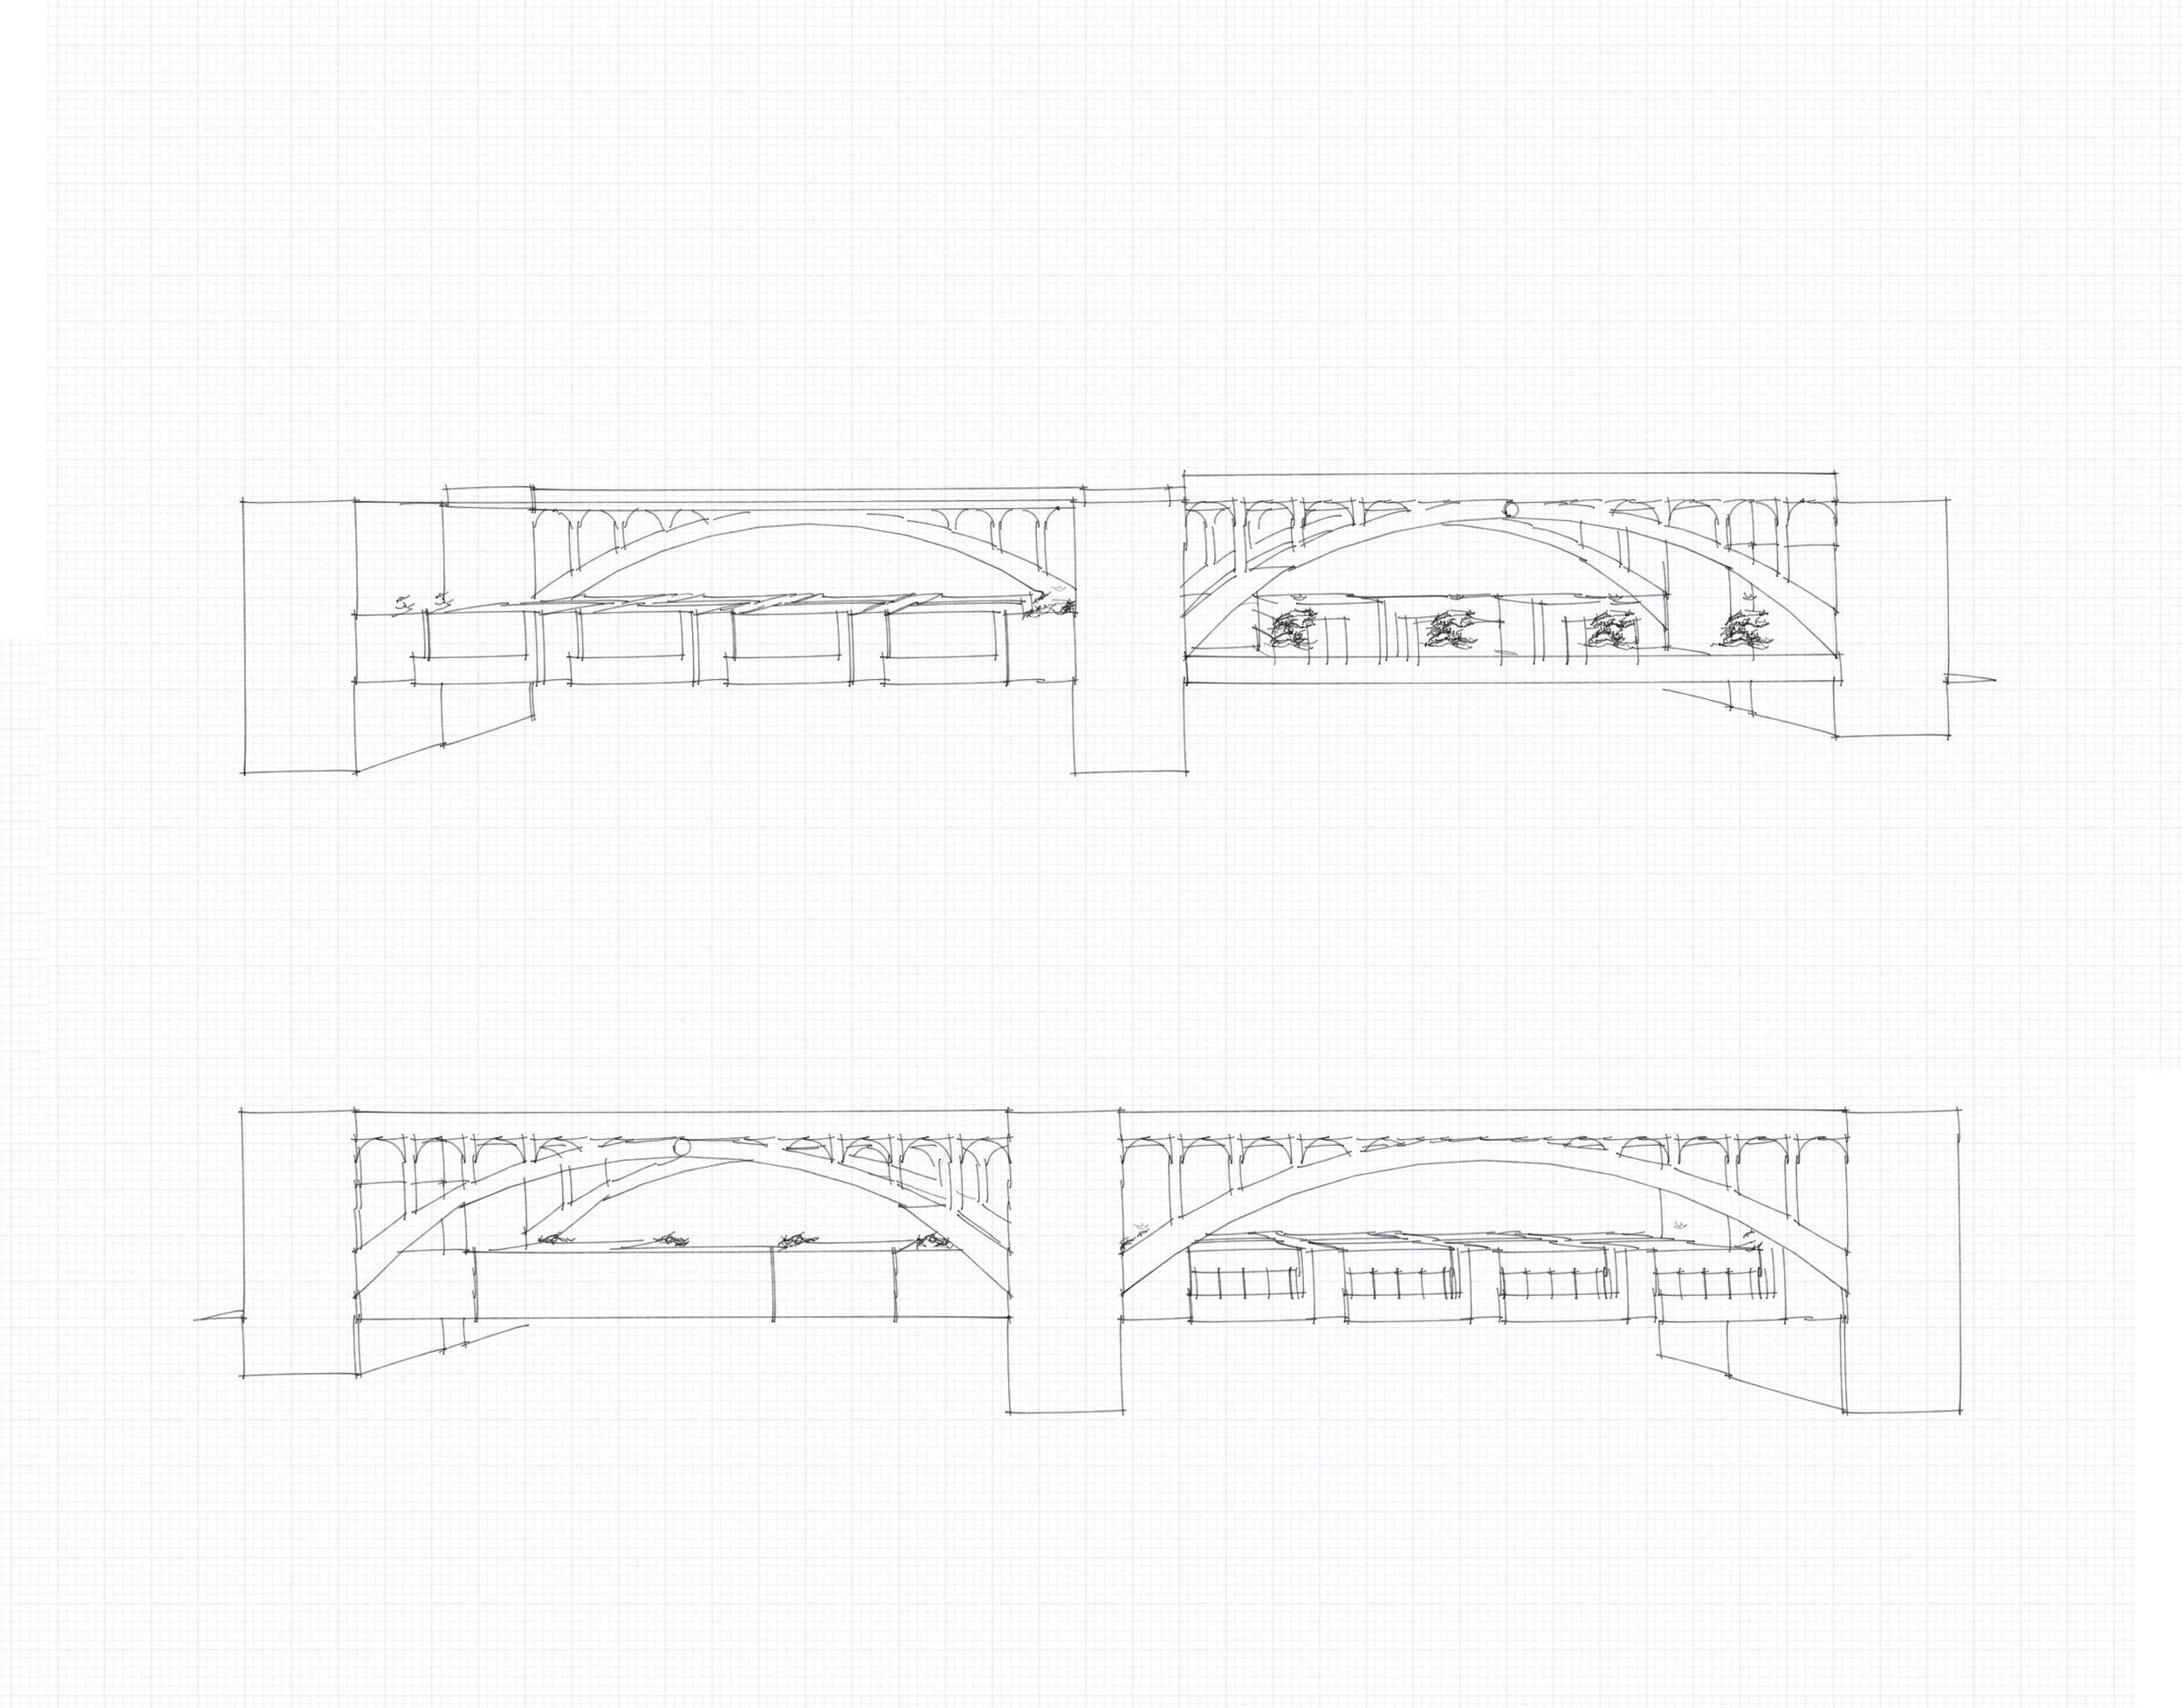 ilsa-melchiori-interior-design-sketches-drawings.jpg